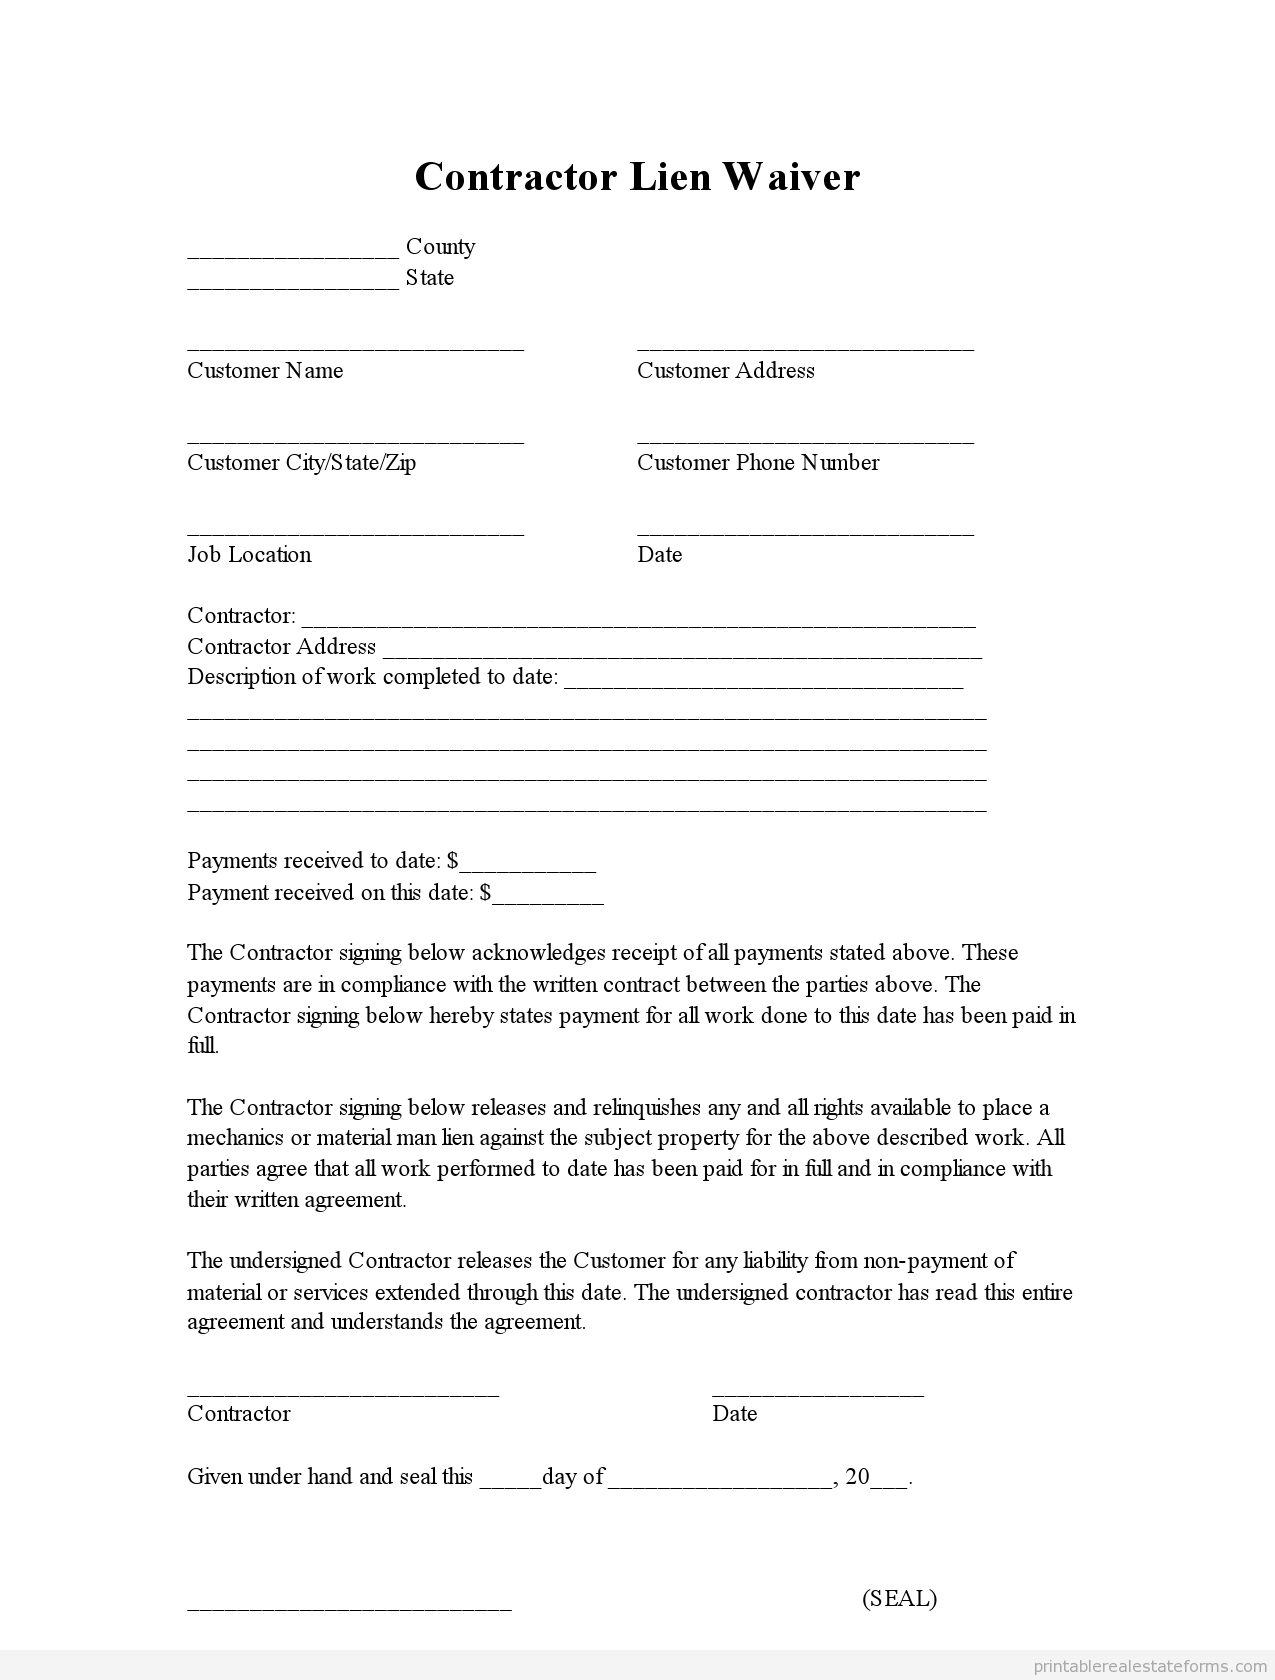 Sample Printable Contractor Lien Waiver Form  Printable Real